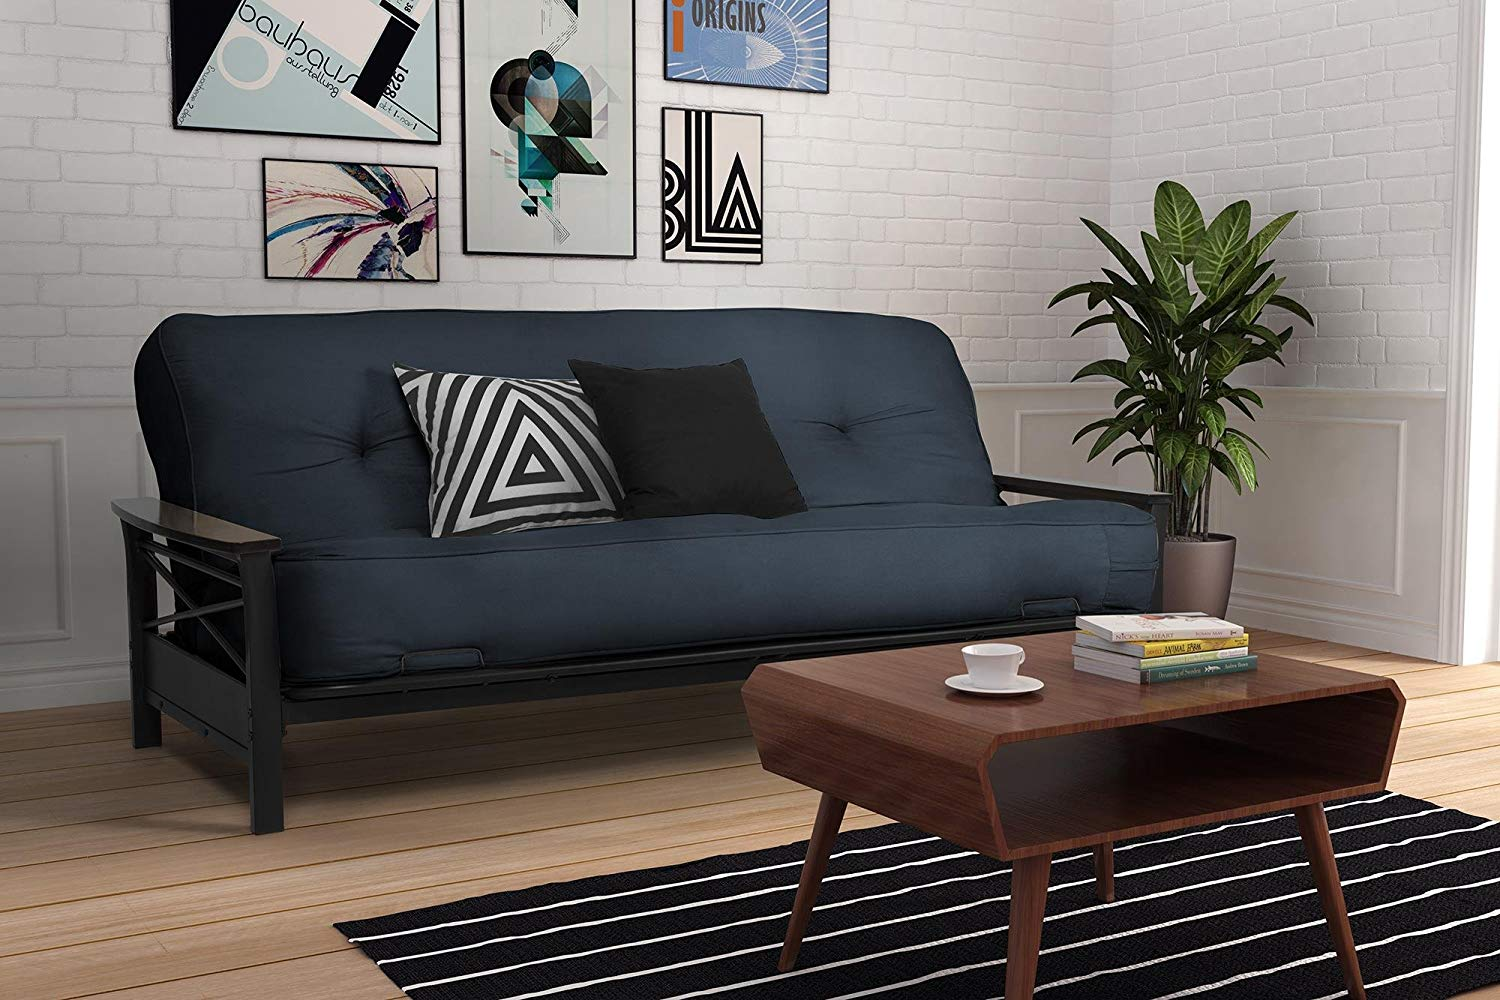 Queen Size Futon Sets